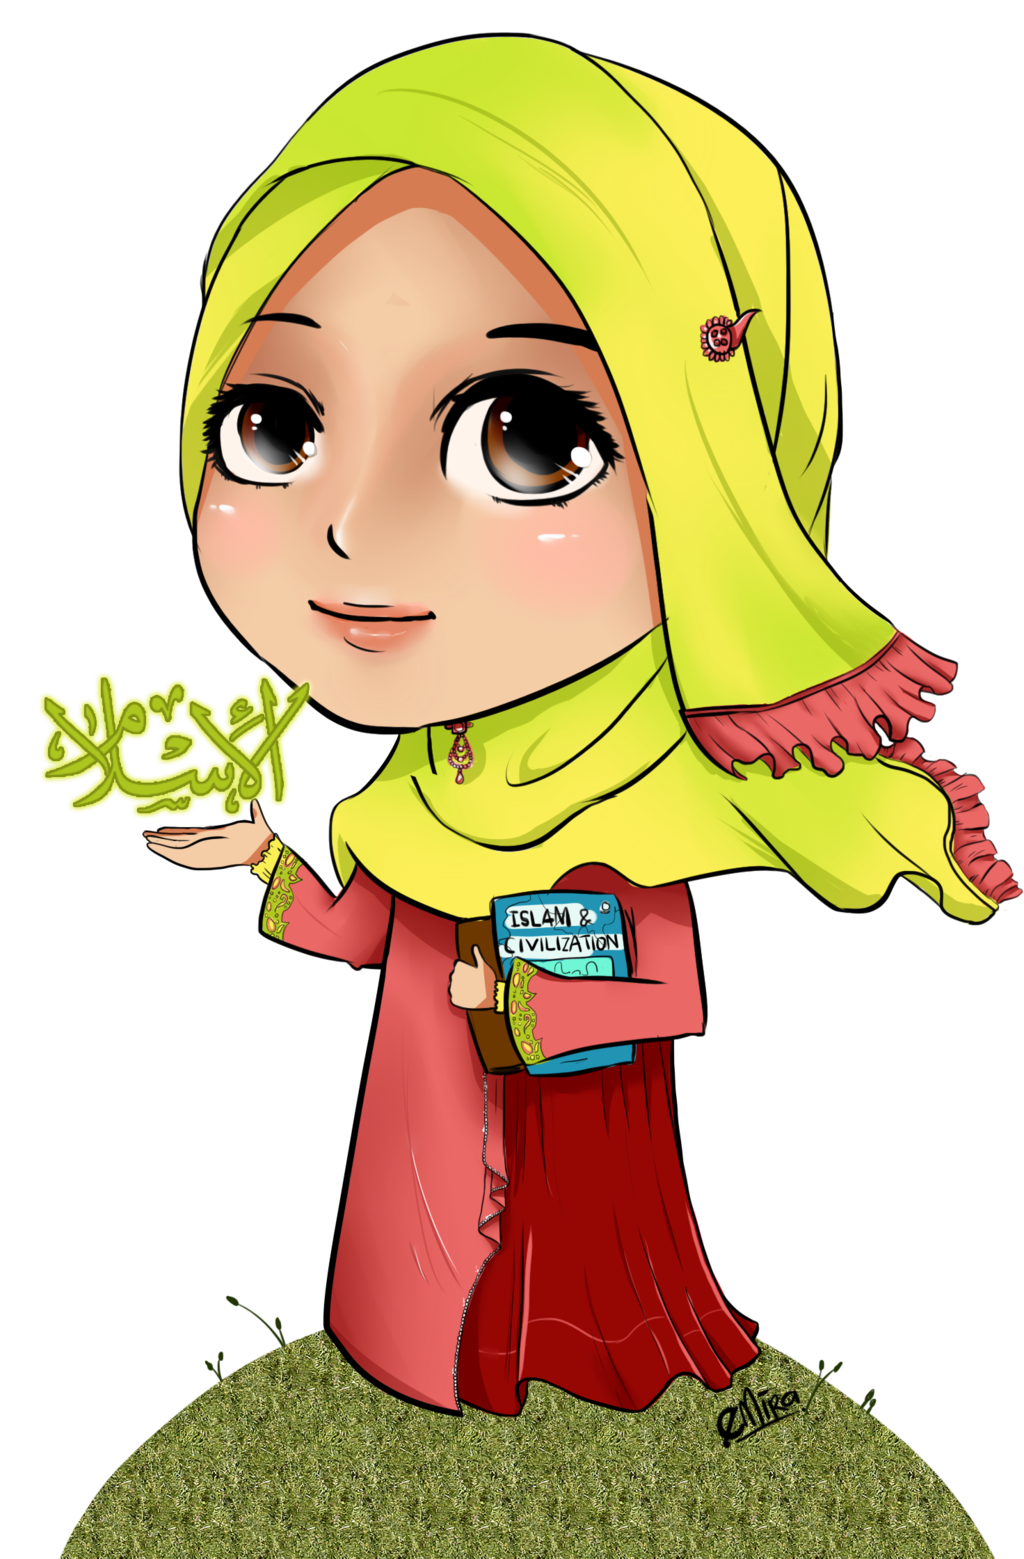 I Choose Islam Chibi By Babyjepuxdeviantartcom On DeviantArt